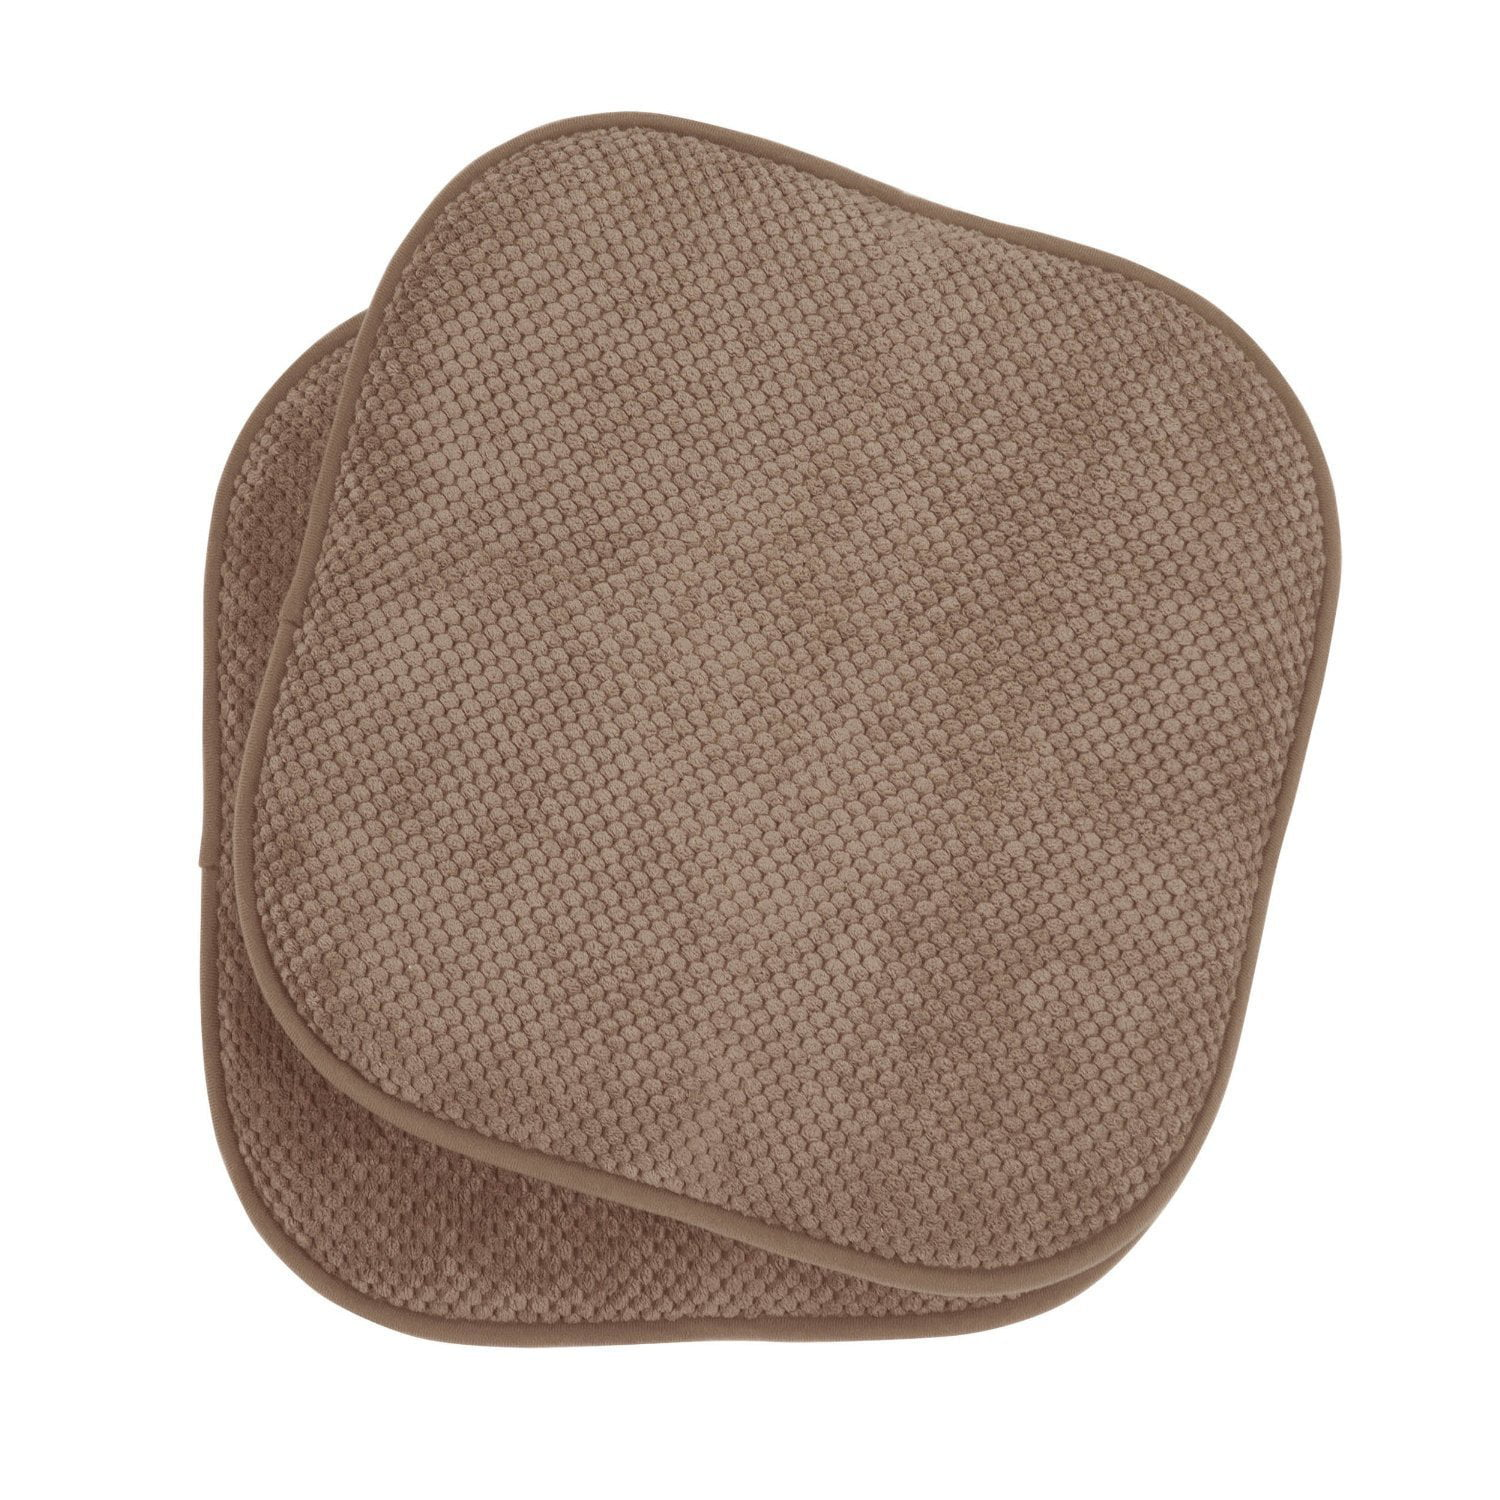 2 Pack: GoodGram Non Slip Ultra Comfort Memory Foam Chair Pads Taupe by GoodGram